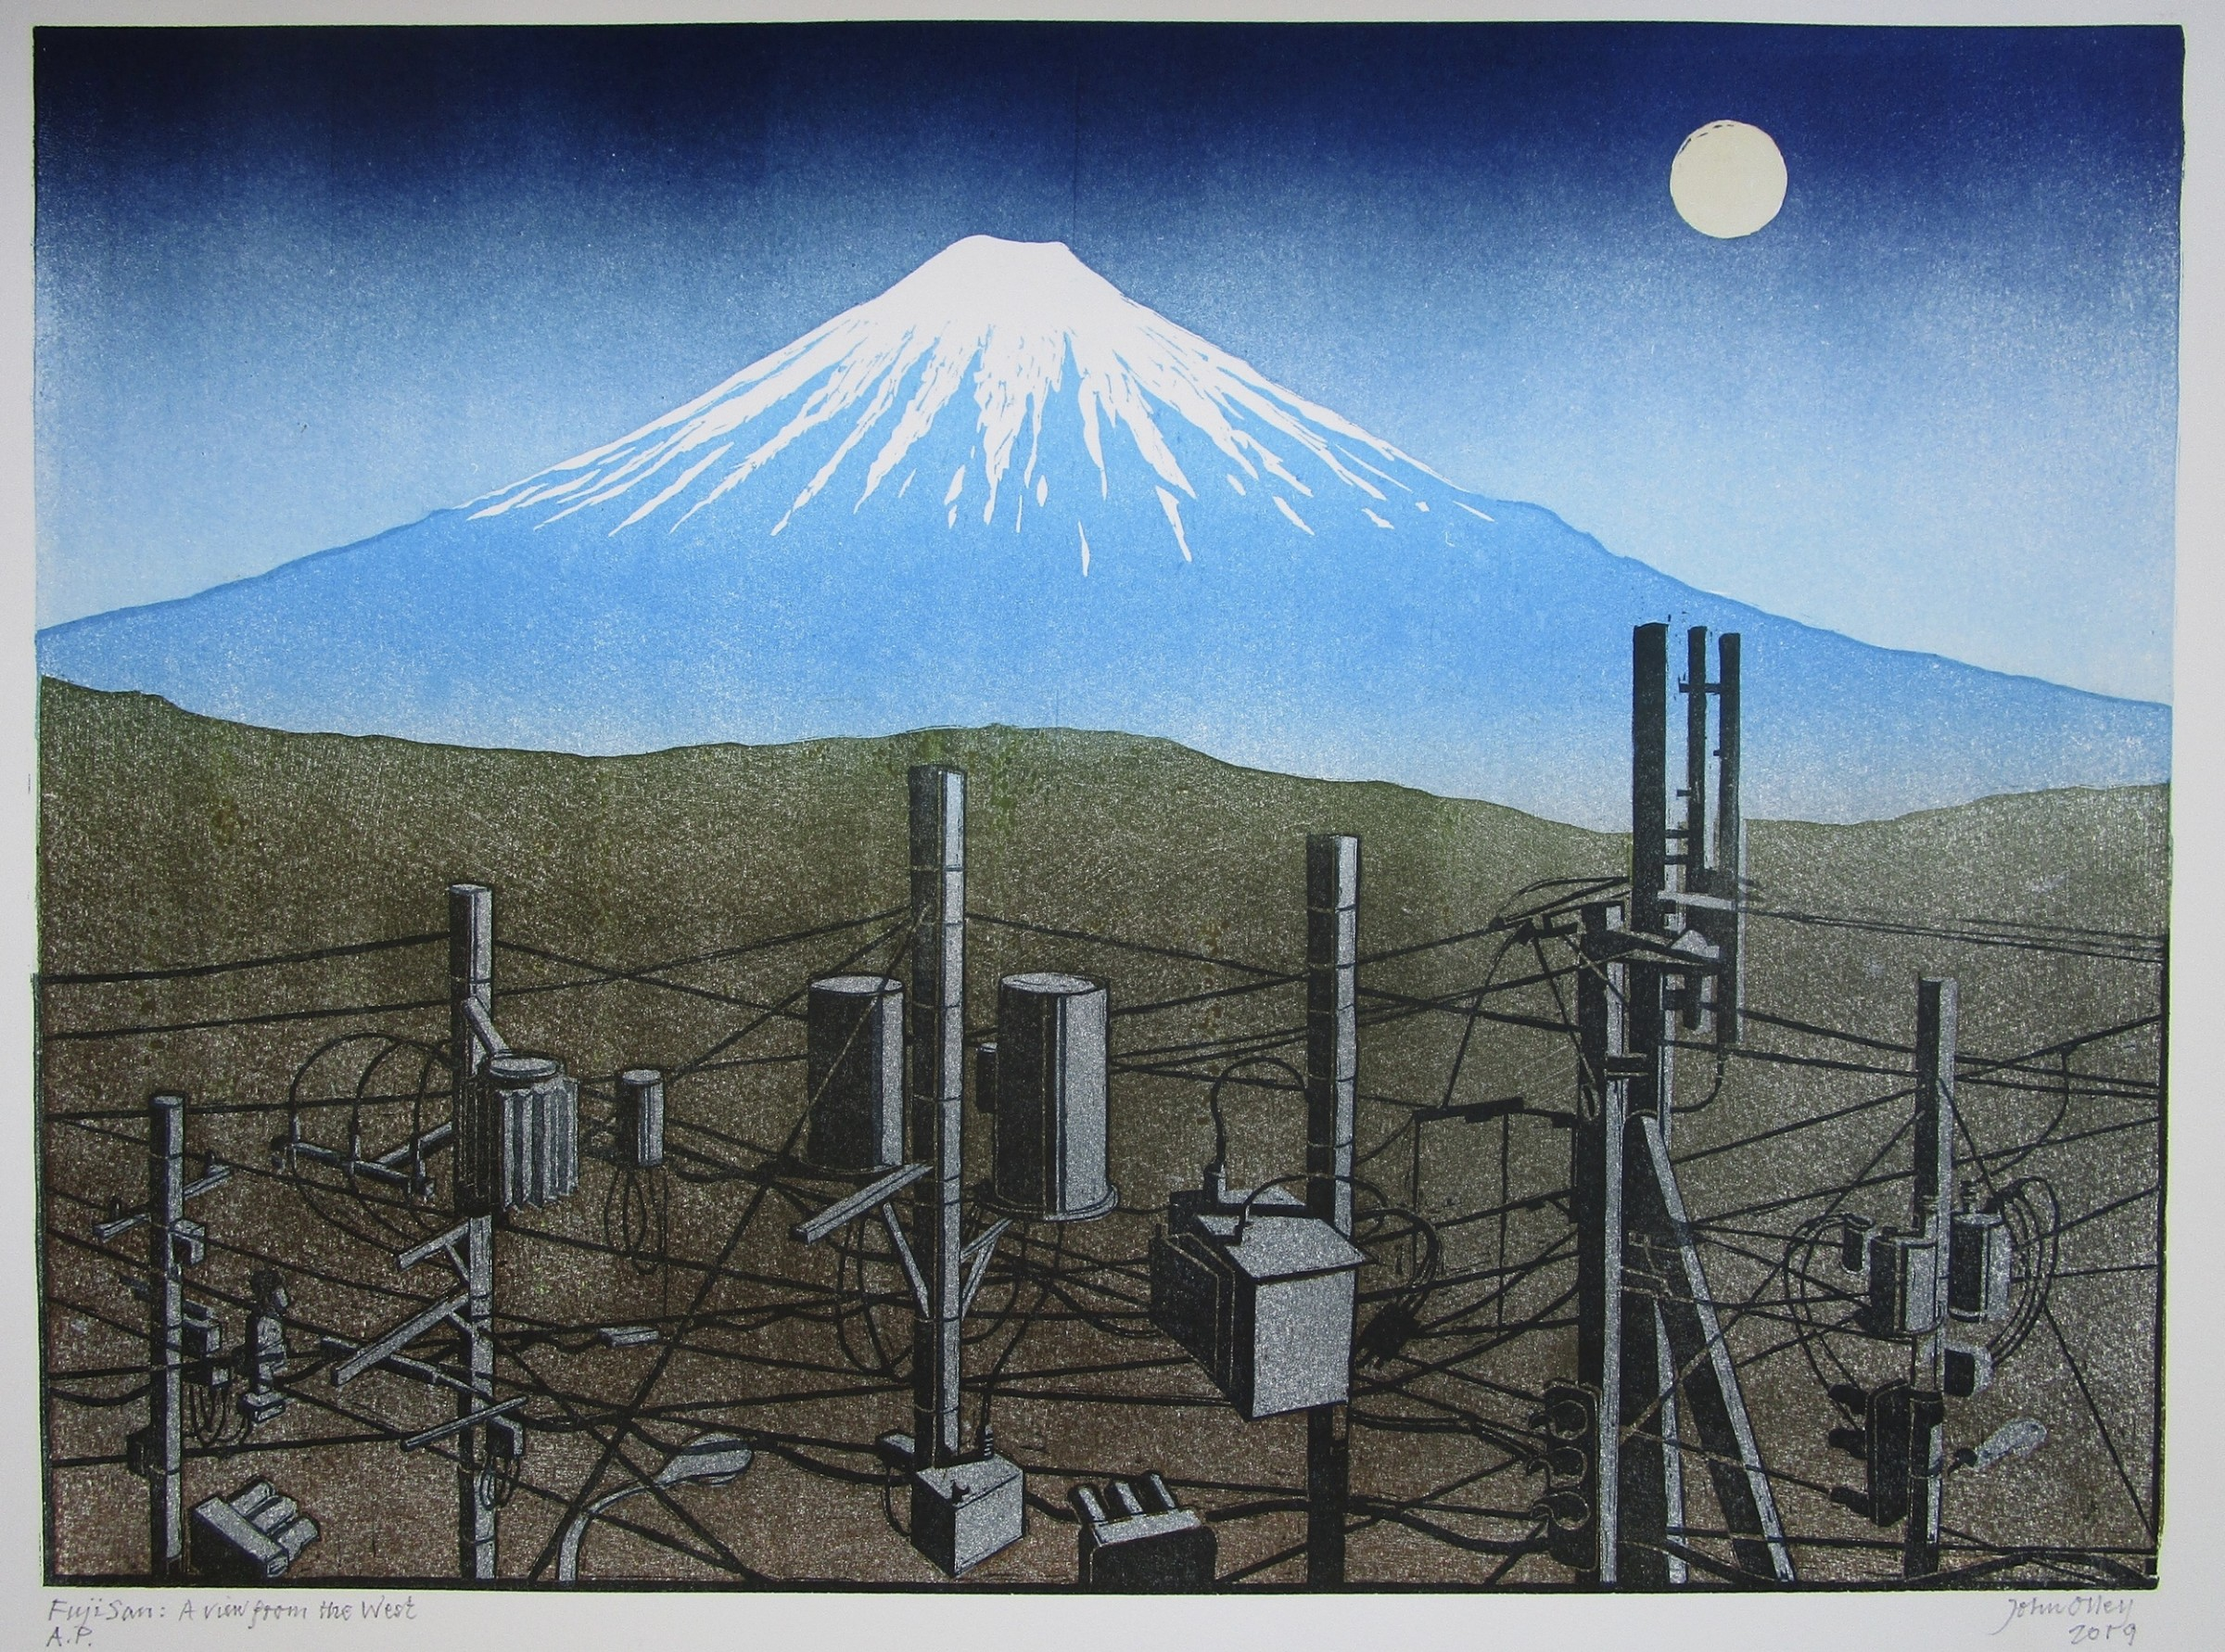 "<span class=""link fancybox-details-link""><a href=""/exhibitions/17/works/image_standalone770/"">View Detail Page</a></span><p><strong>John Olley</strong></p><p>Fuji Sam: A view from The West</p><p>linocut, ed of 25</p><p>61 x 52cm</p><p>£395 framed</p><p>£265 unframed</p>"